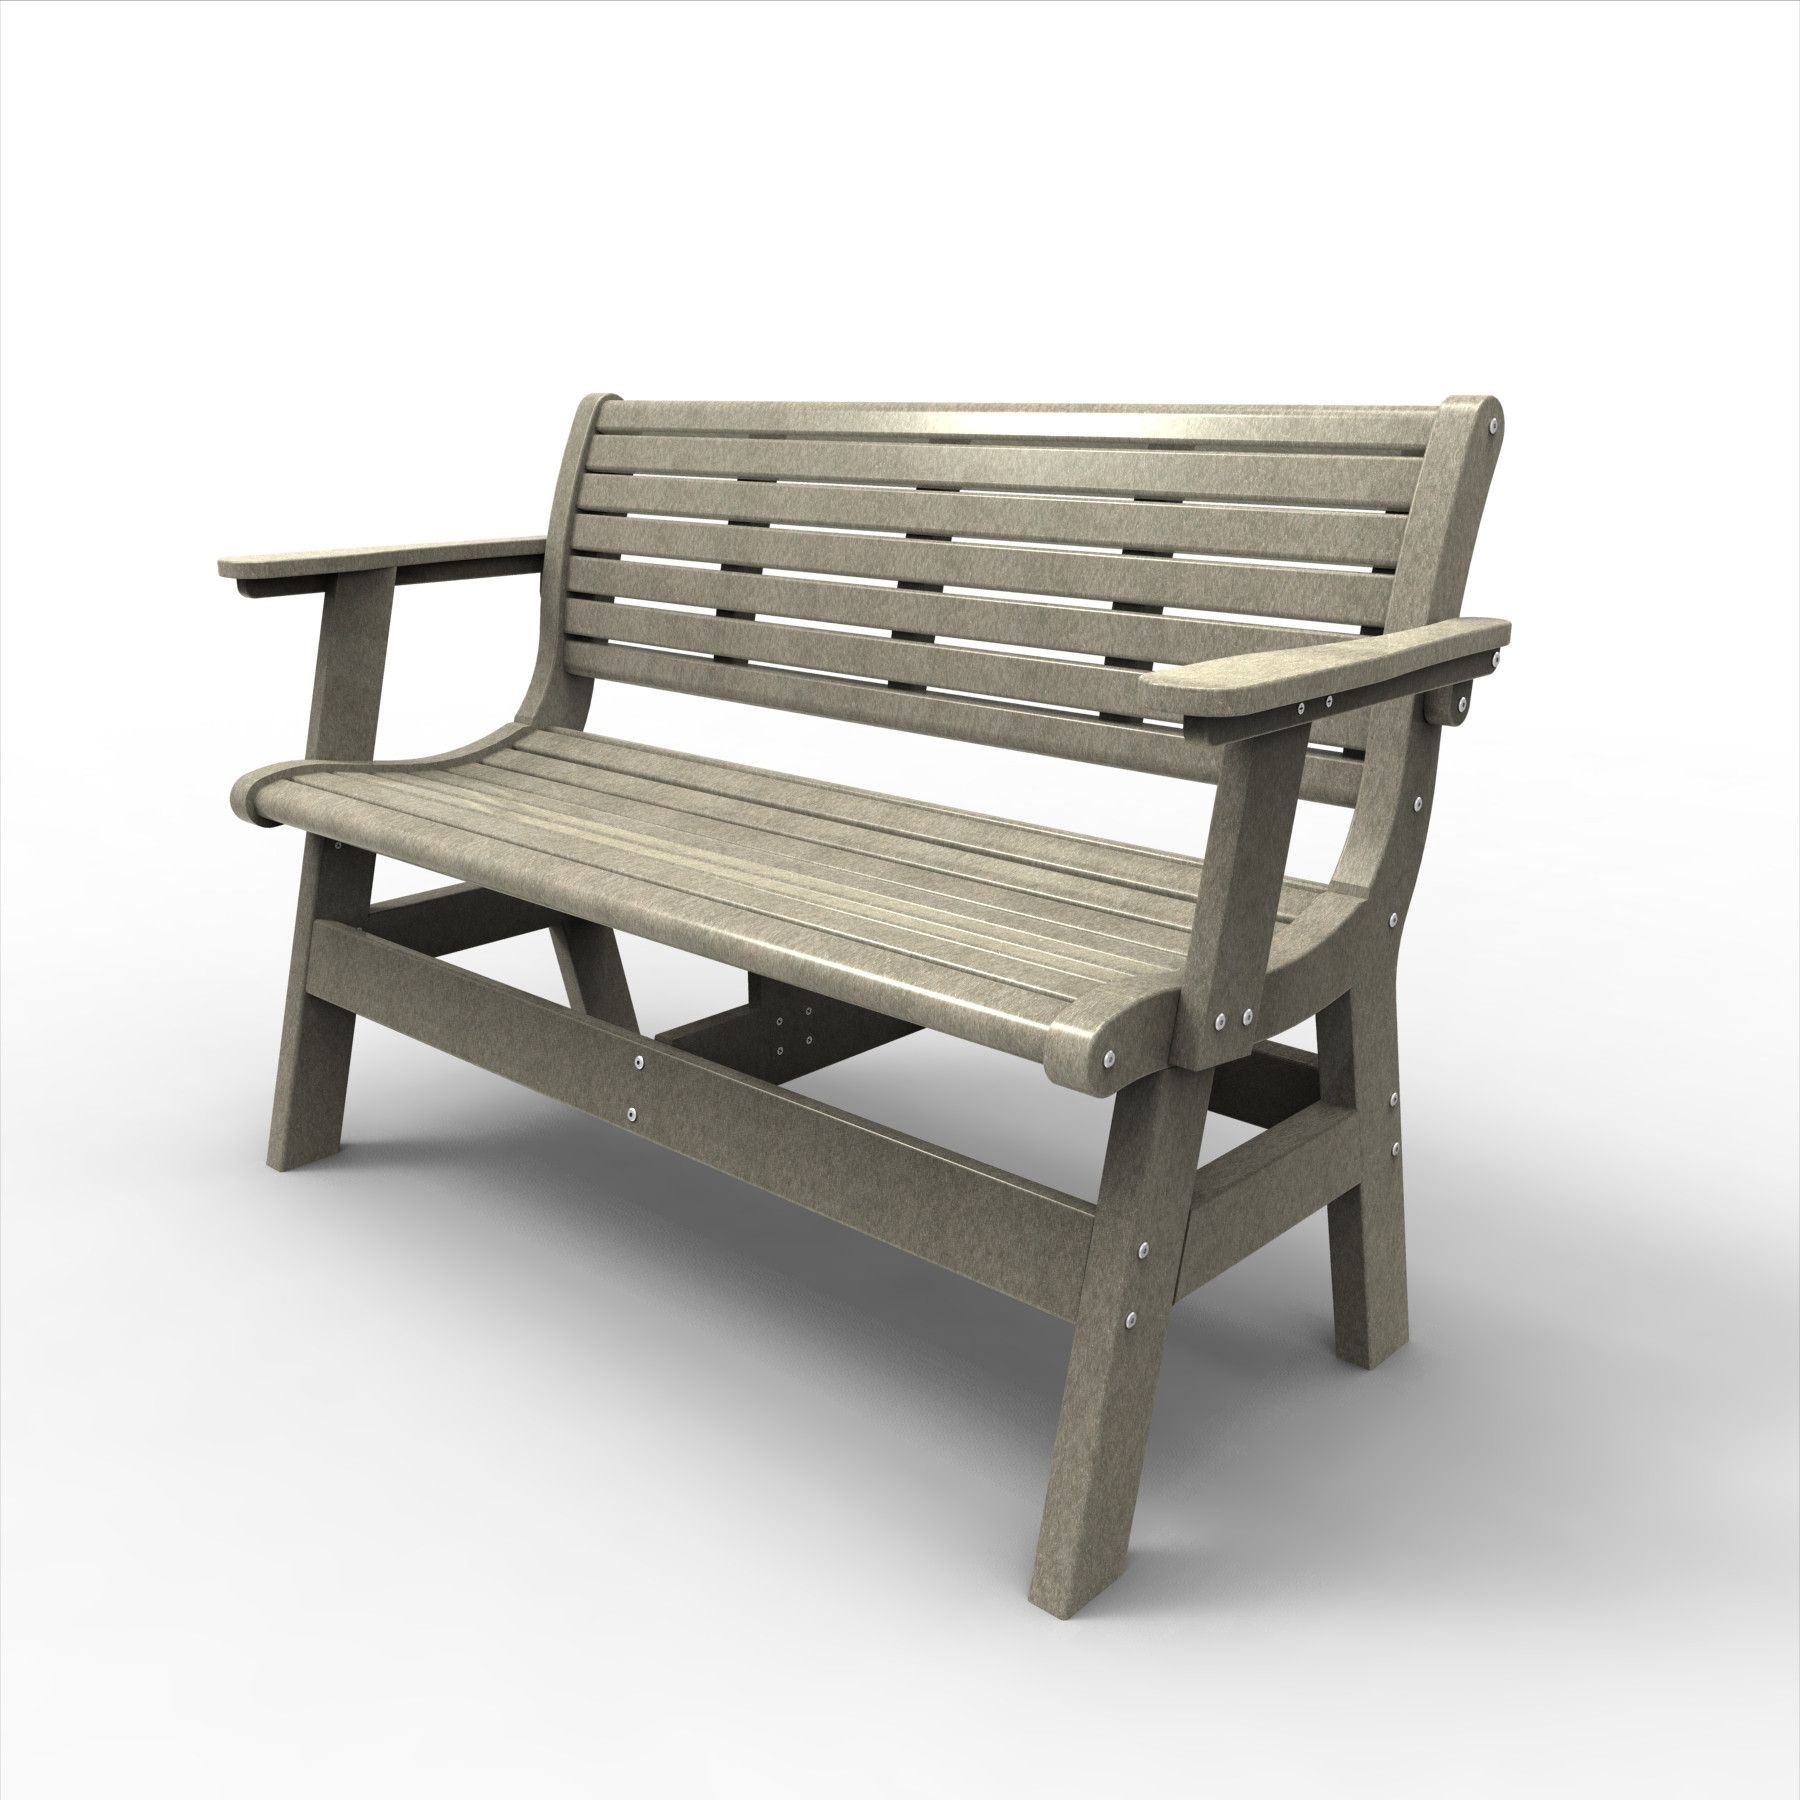 Malibu Outdoor Living Newport 48IN. Bench with Back Arms and Back